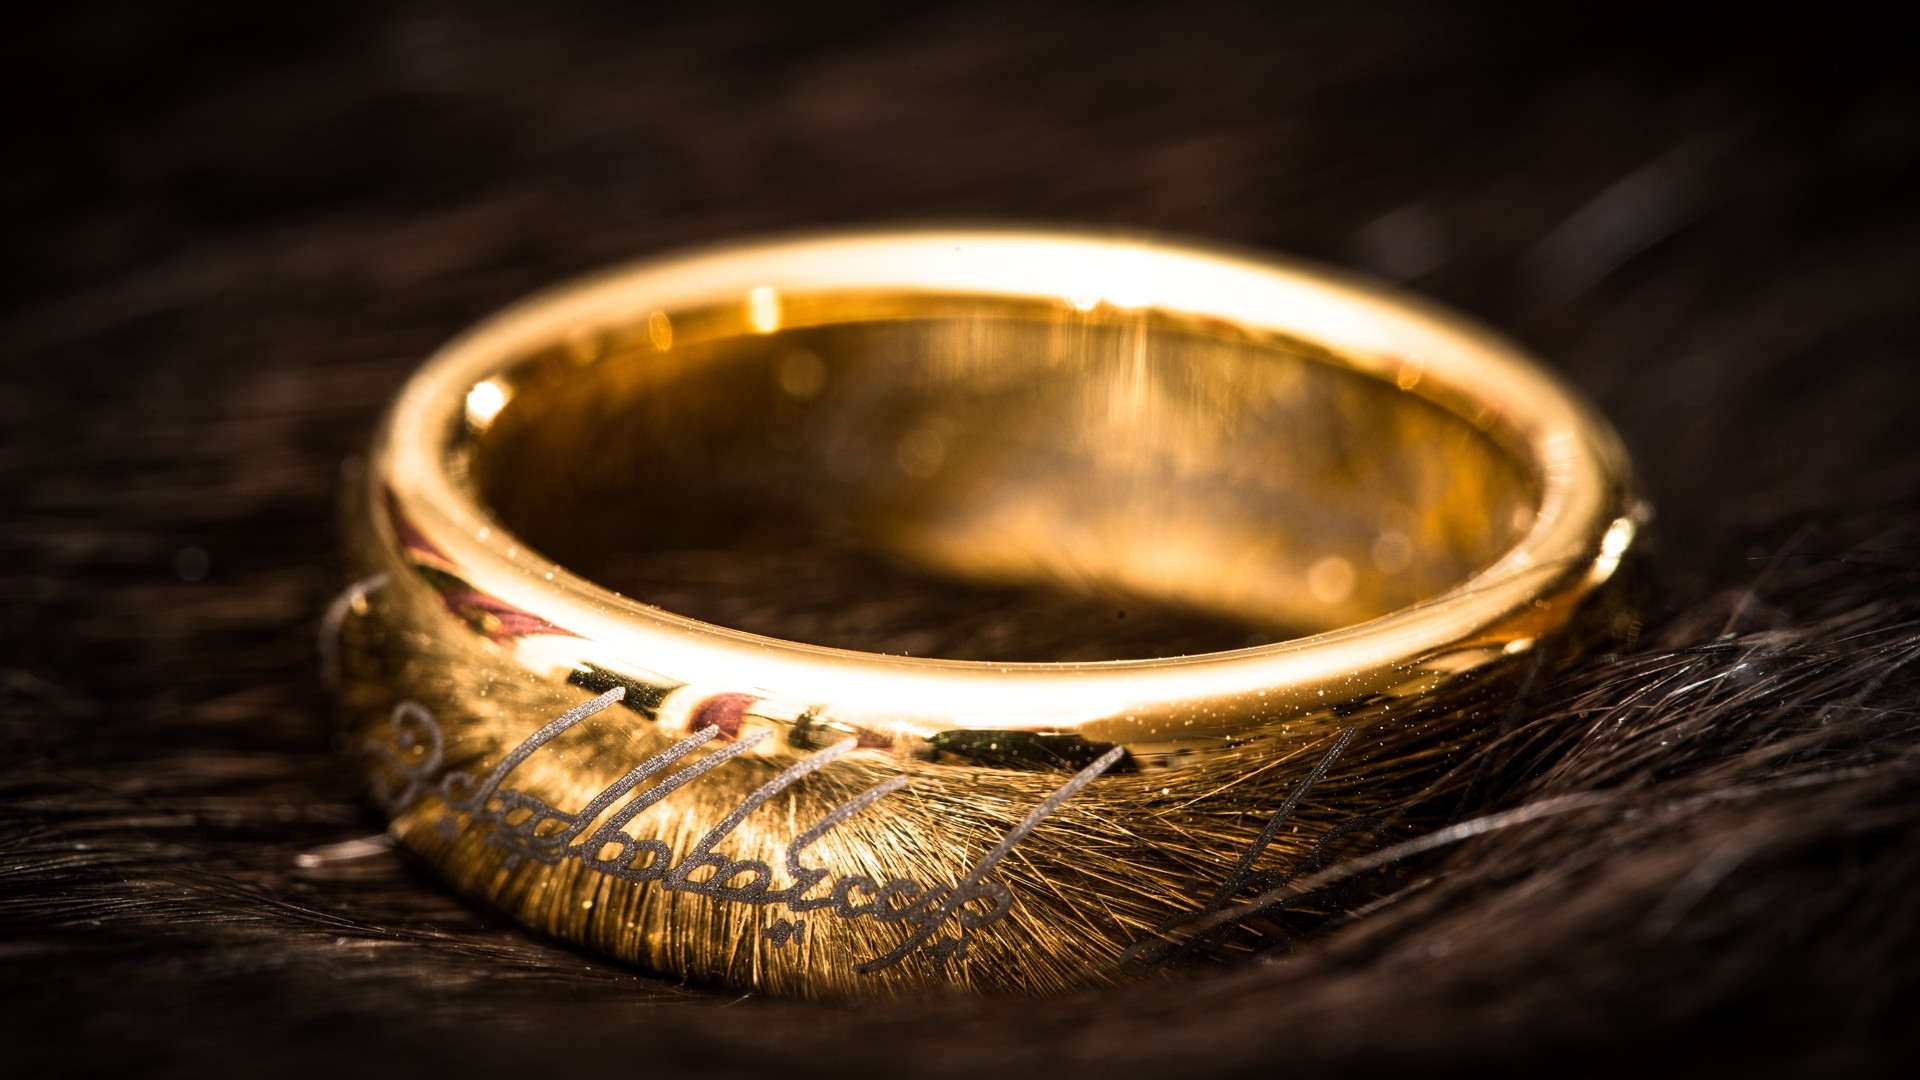 Rings The Lord of the Rings one ring wallpaper 1920x1080 186397 1920x1080